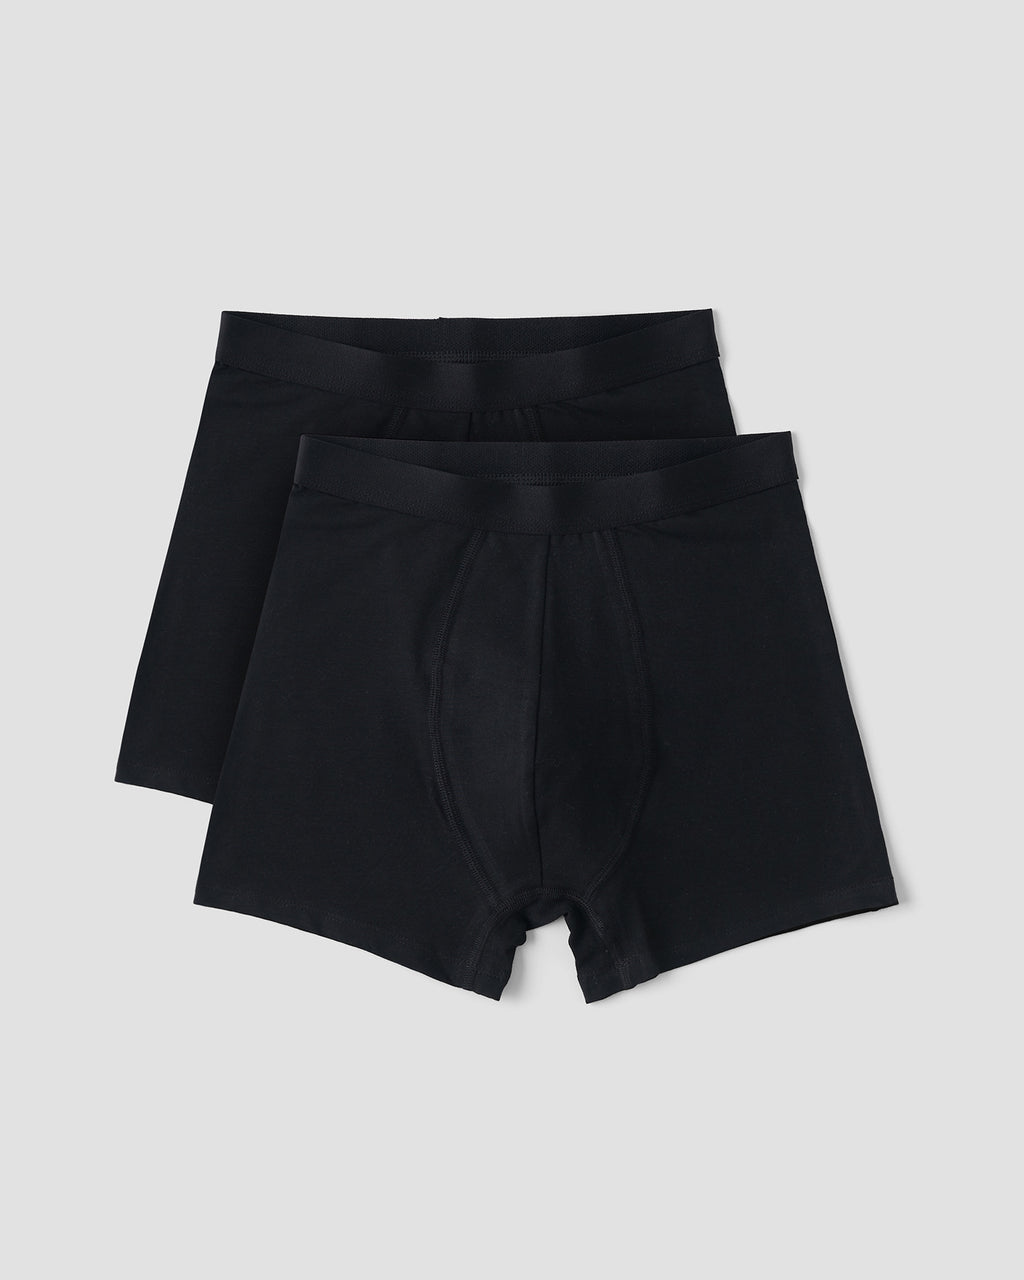 Organic Cotton Boxers 2-pack, Black